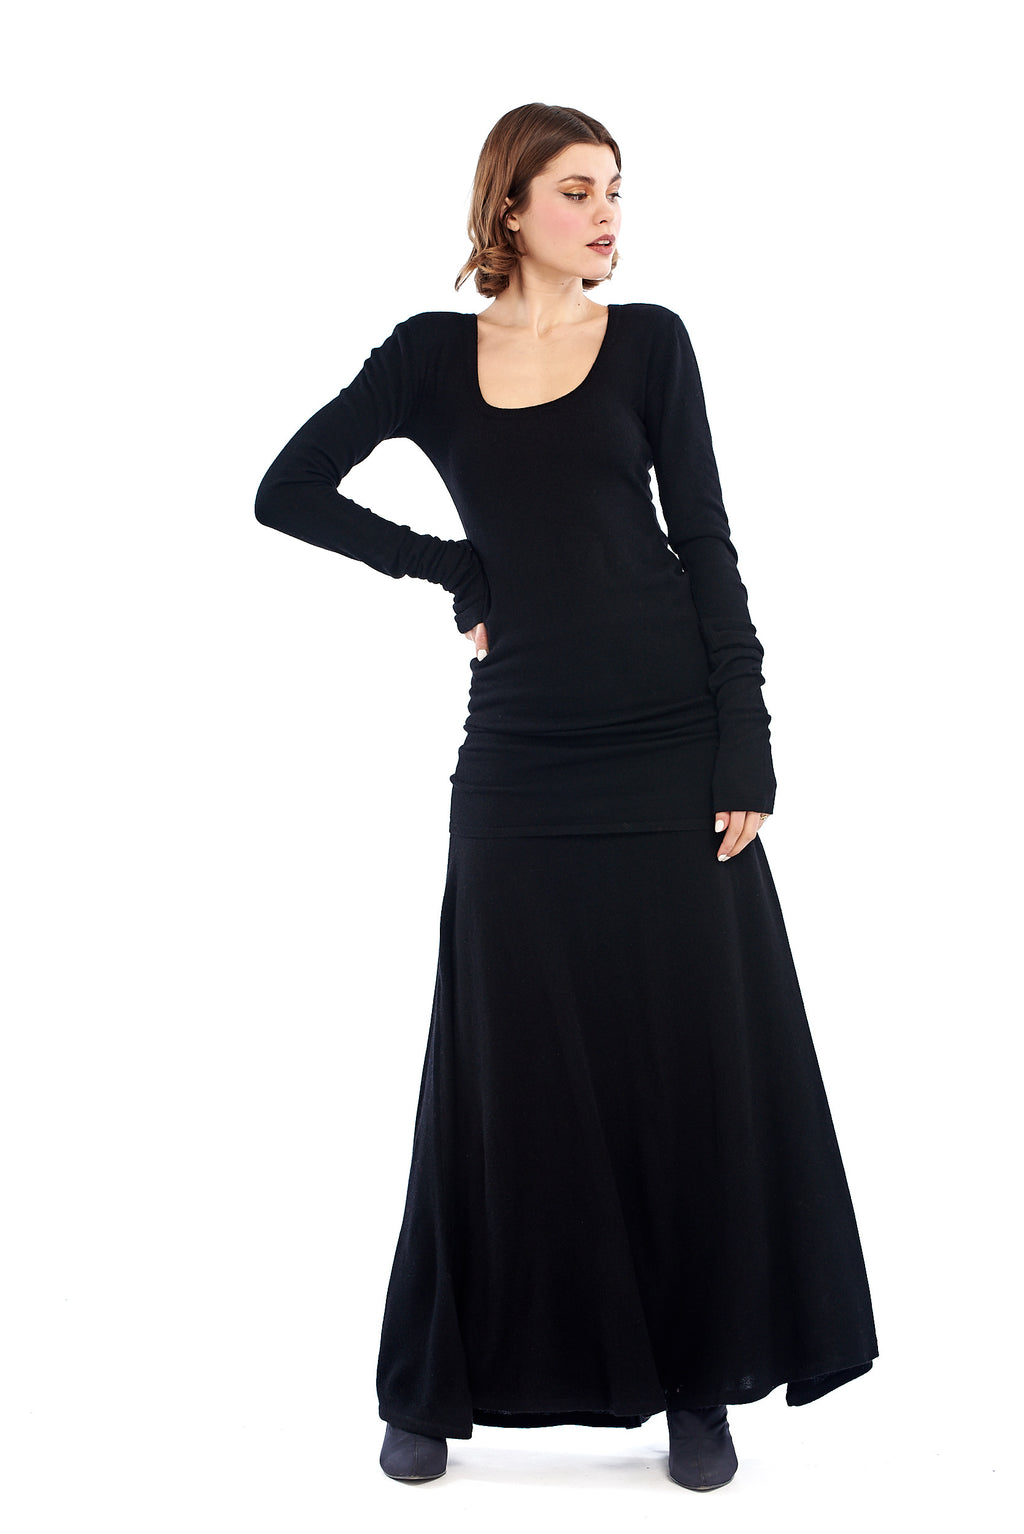 100% Pure Mongolian Cashmere Avalon Skirt Black - MUDRA